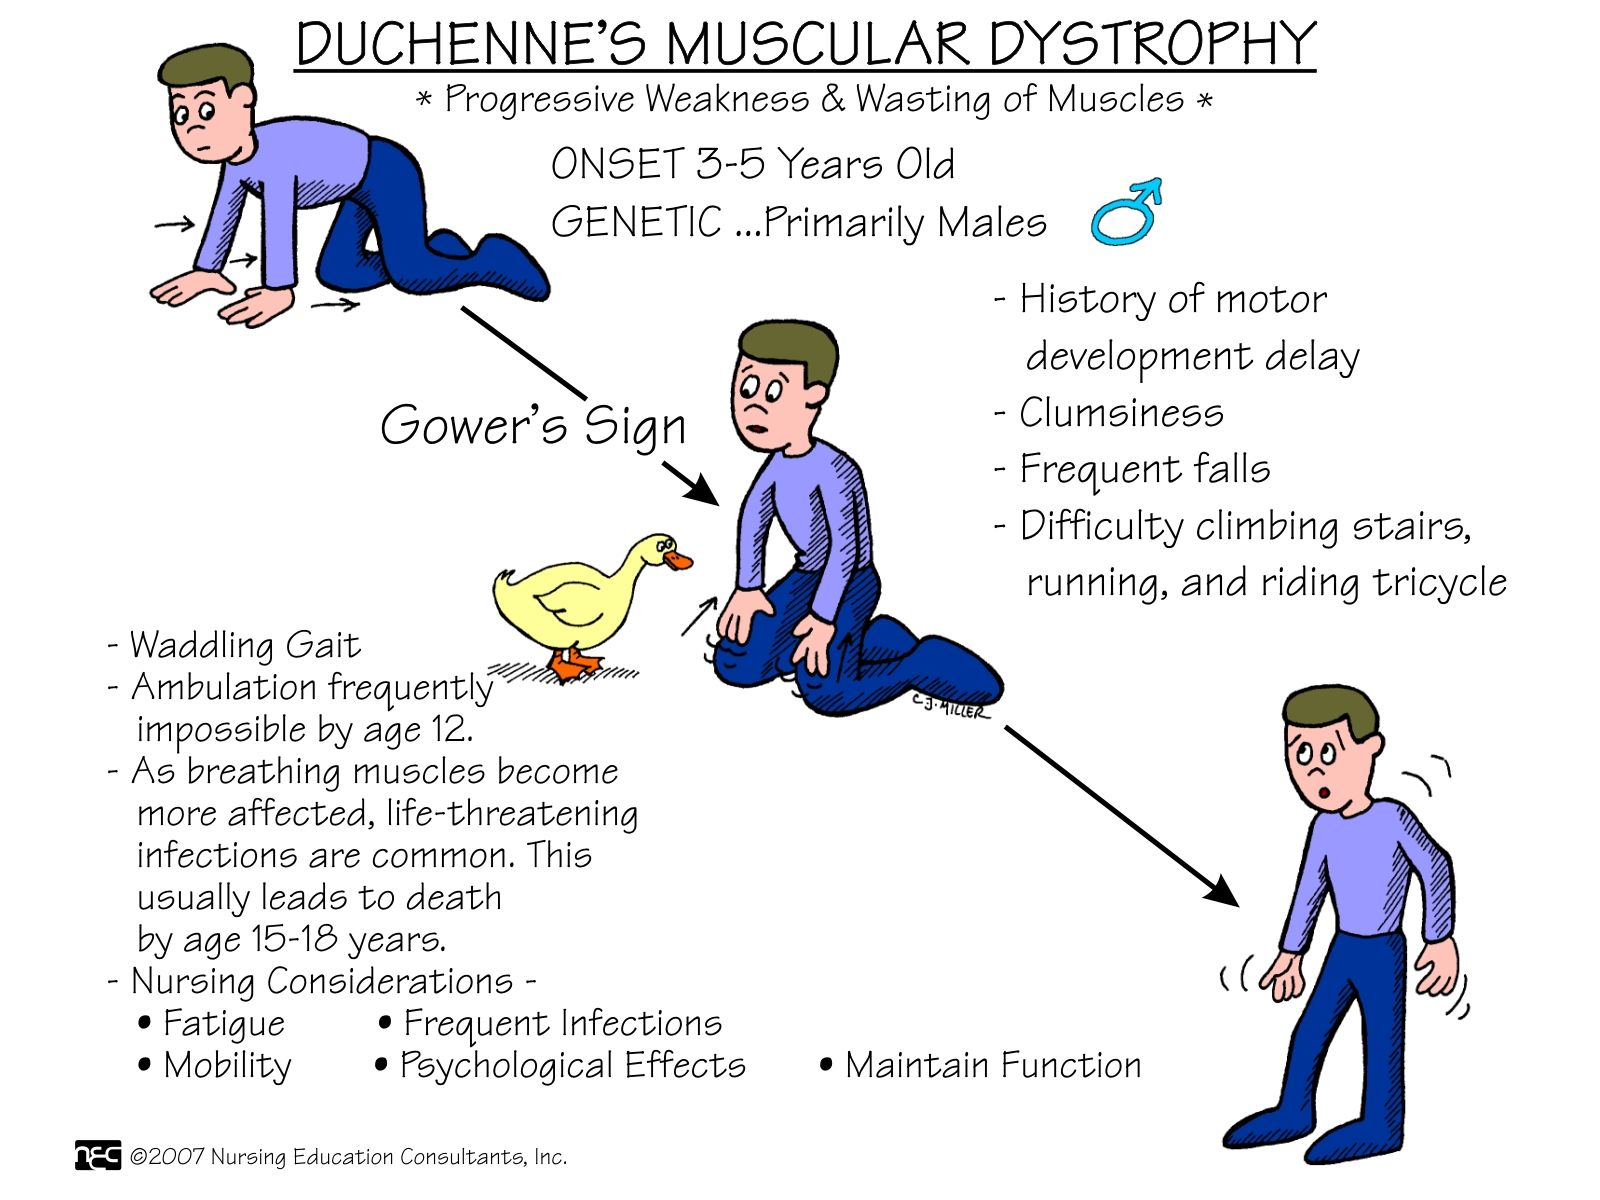 Duchenne Muscular Dystrophy Death Statistics Nursing Health Assessment Mnemonics And Tips Amsterdam